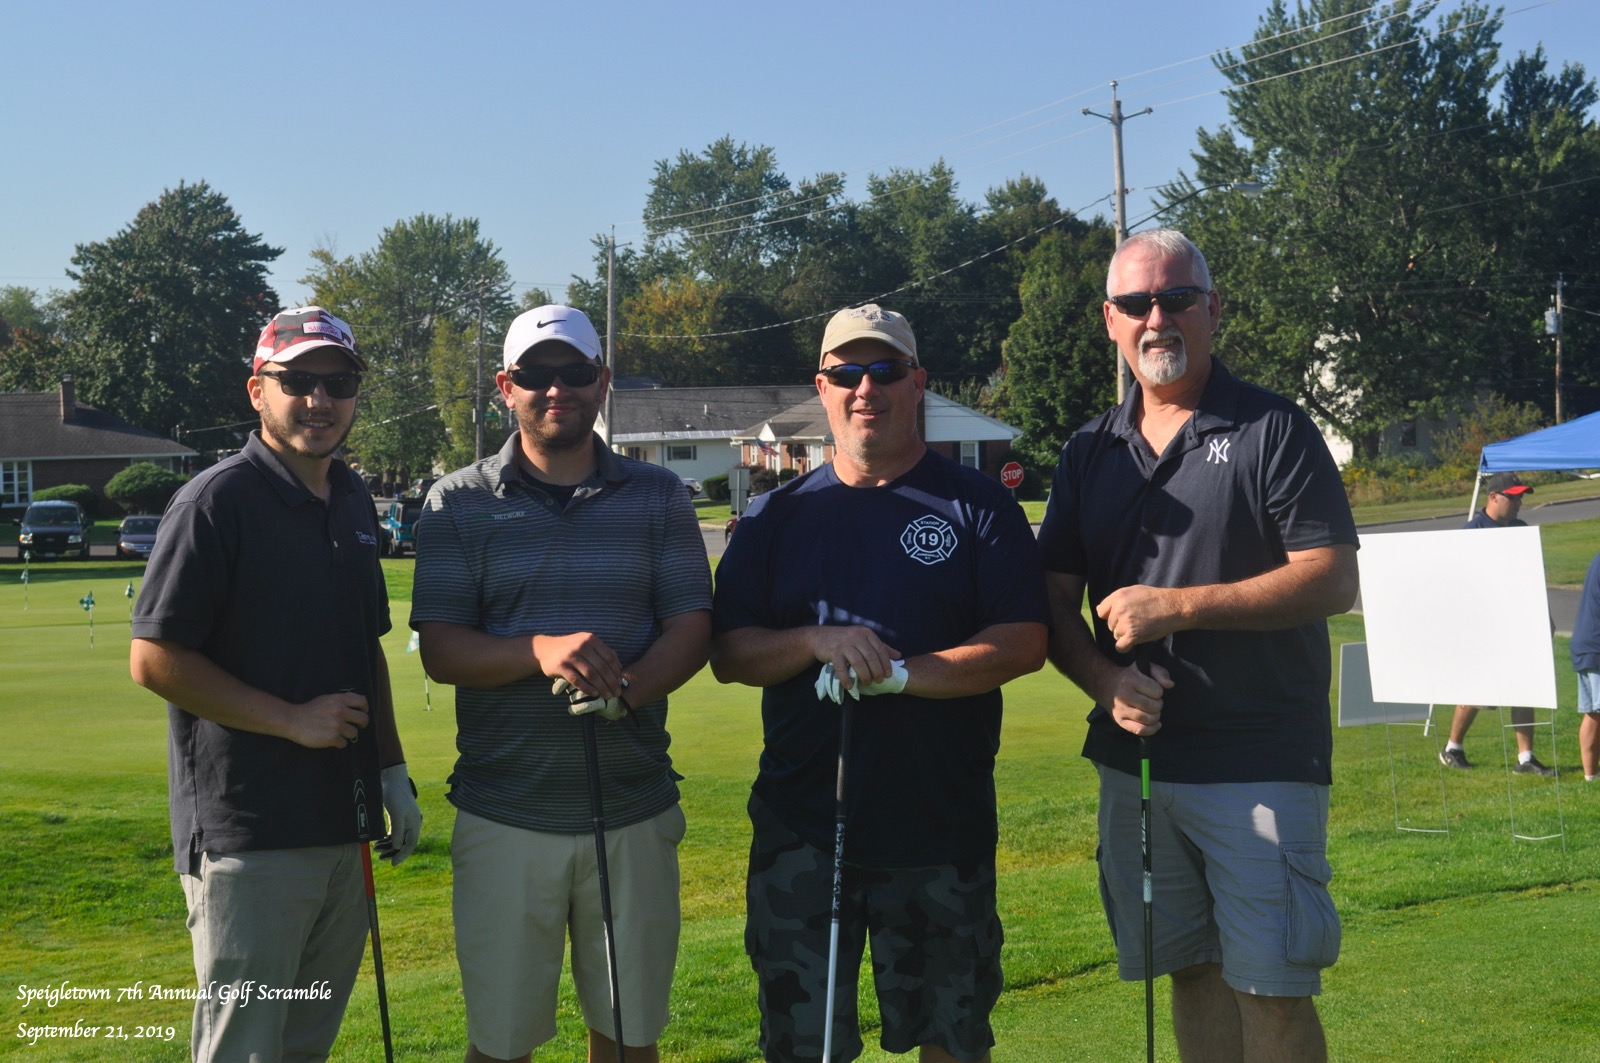 Speigletown Golf Scramble 2019 Teams2